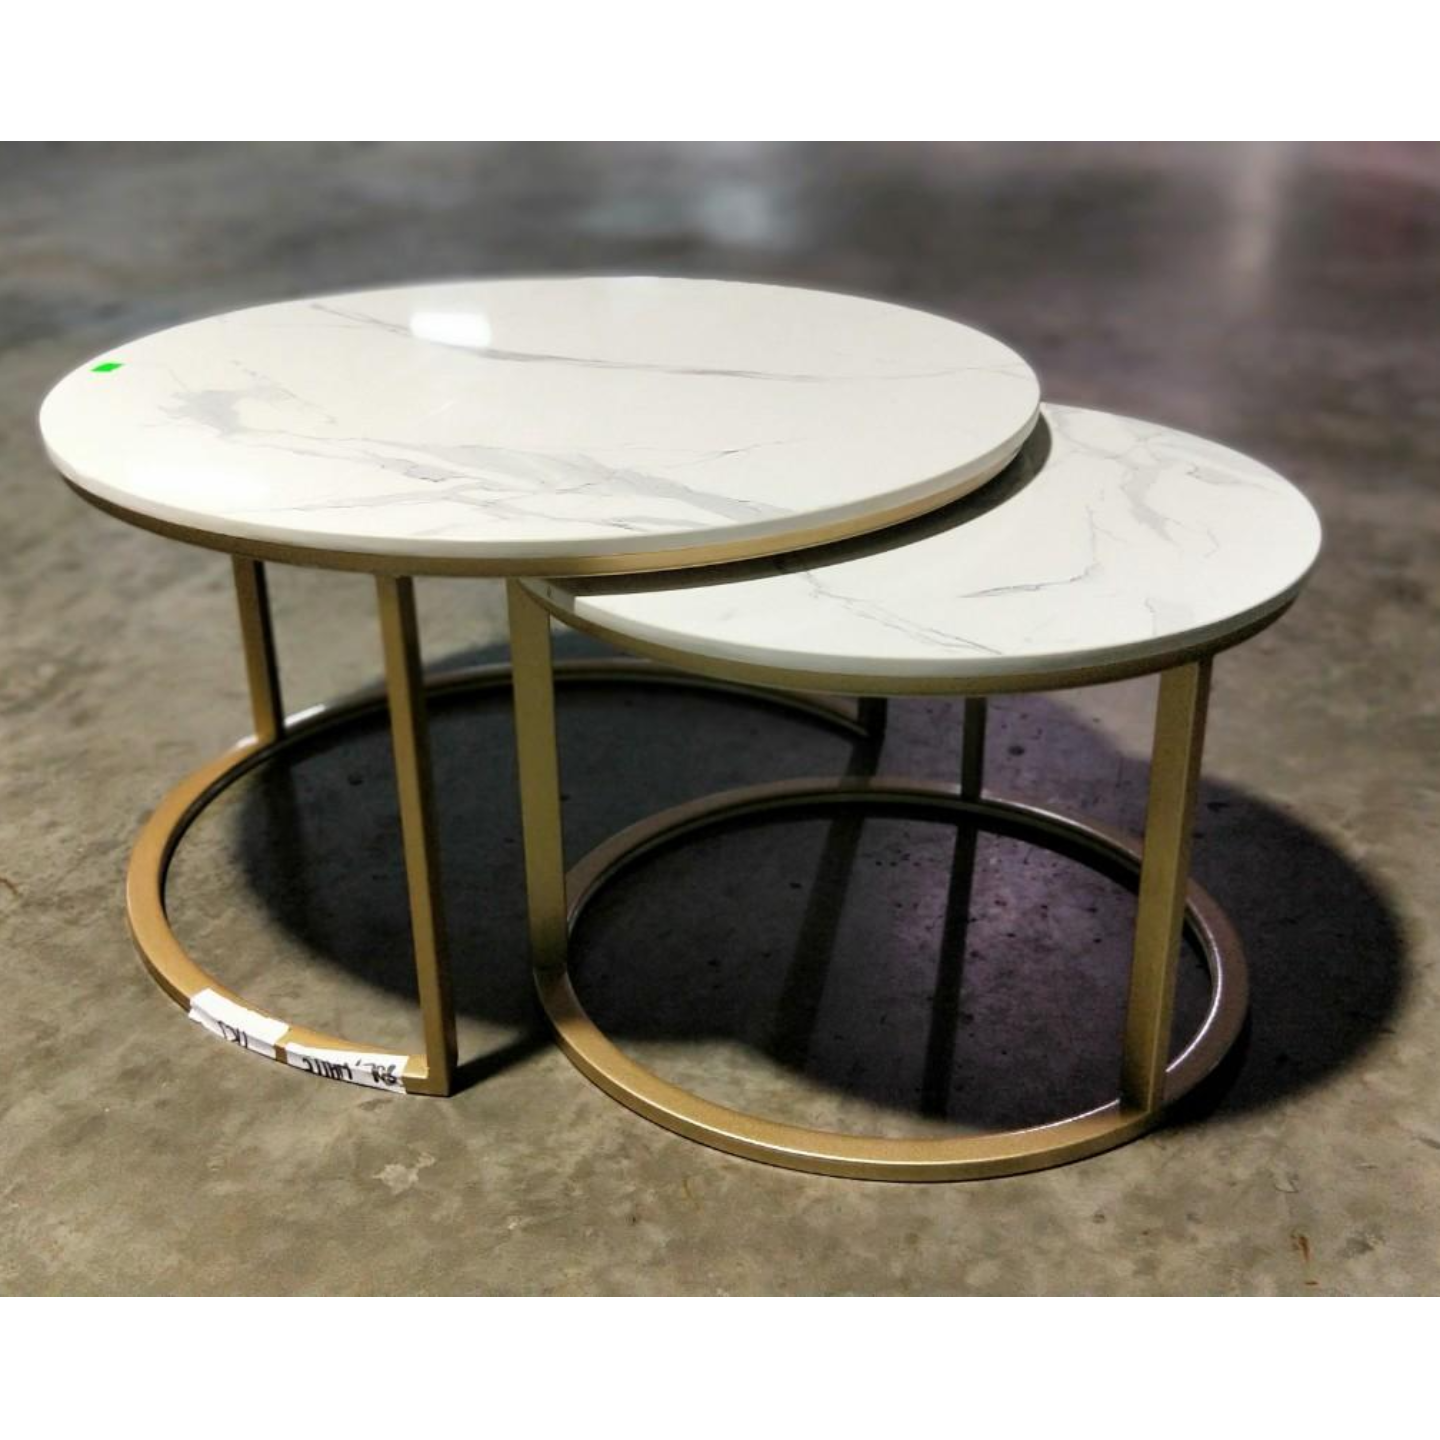 JAIZE Modern Marble Round Nesting Table Set